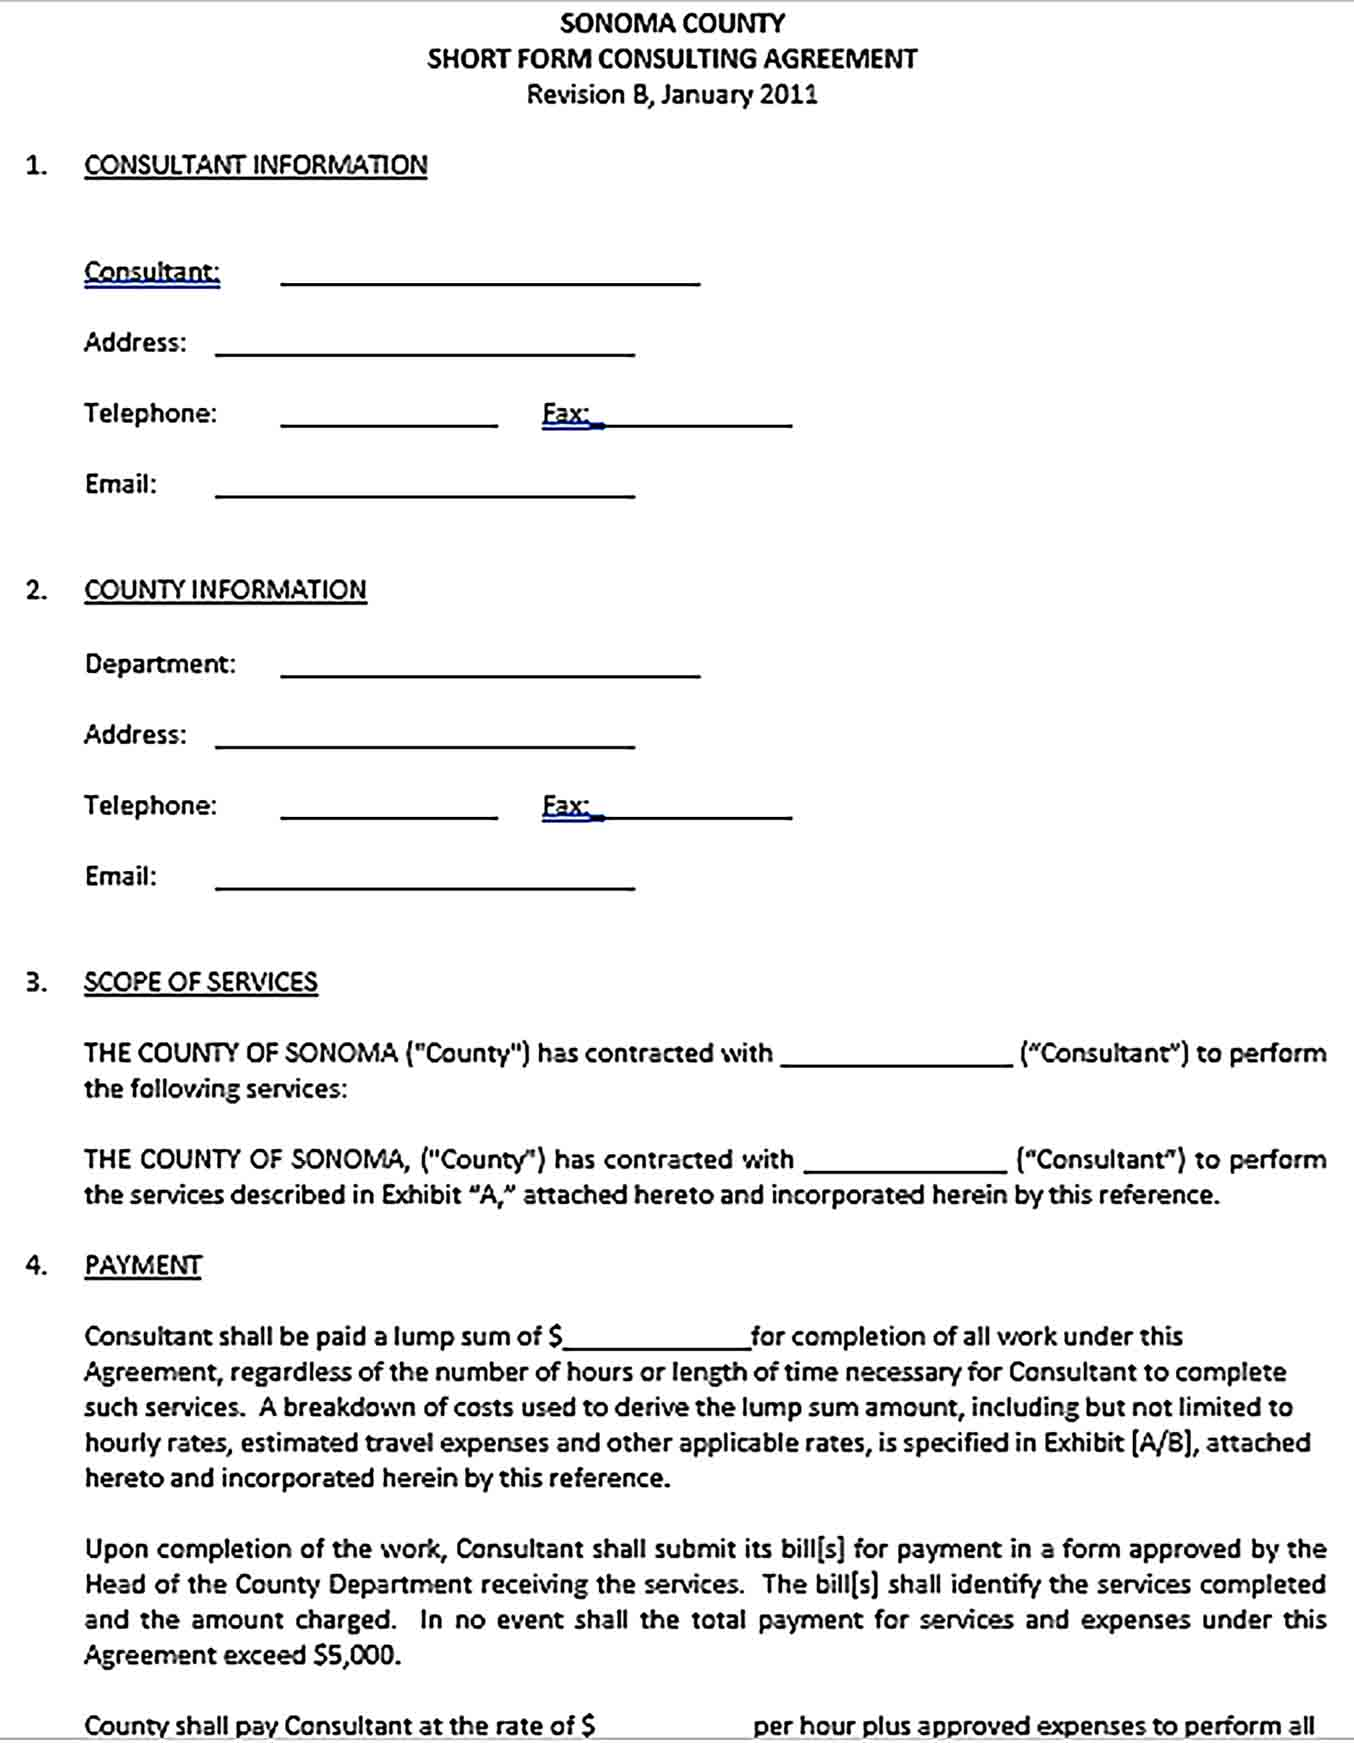 Sample Short Form Consulting Agreement